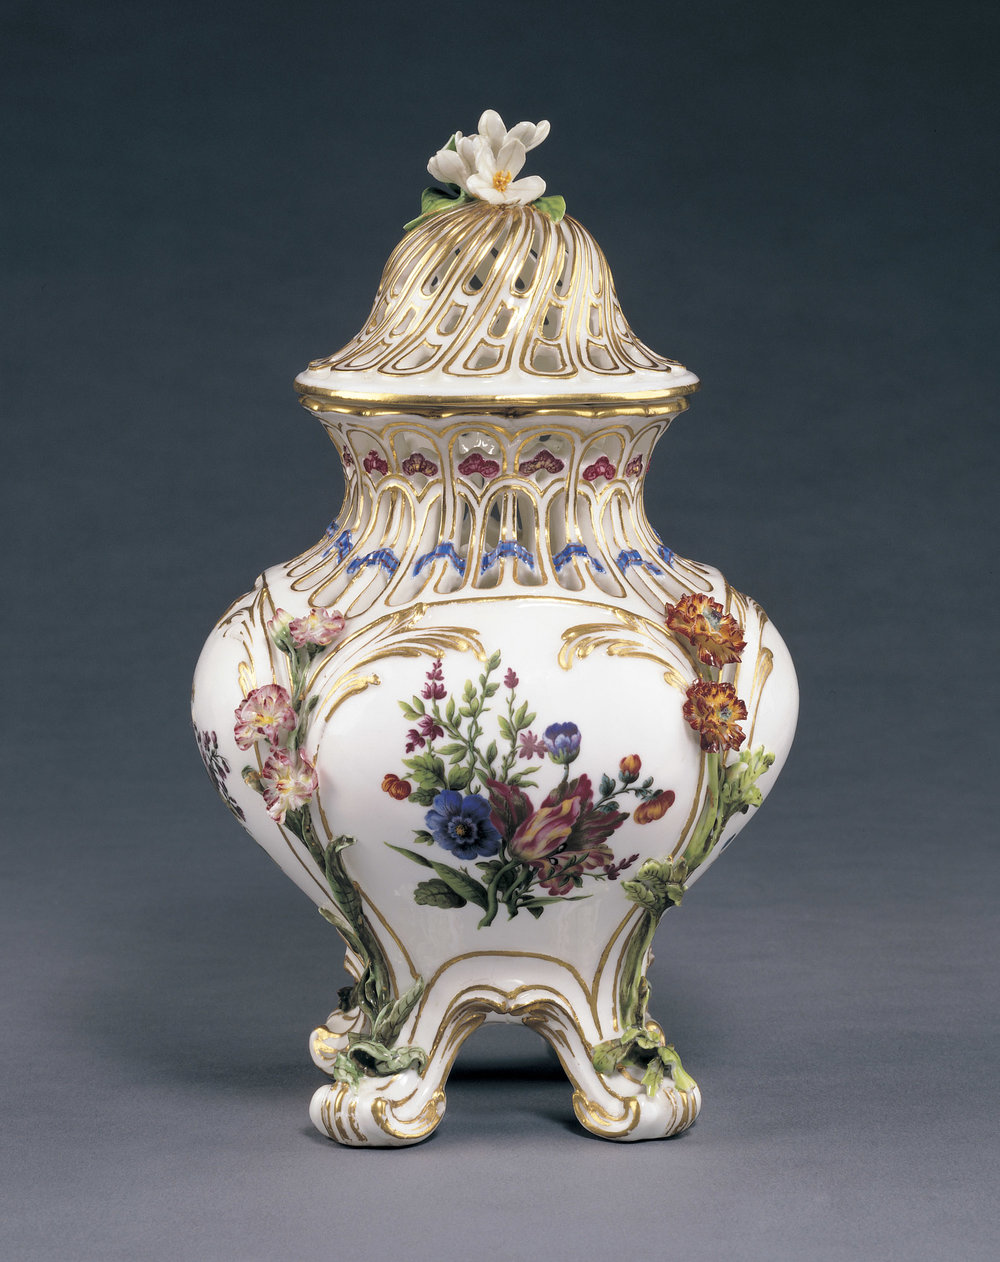 Vincennes Porcelain Factory, 1752-53, 1917.982